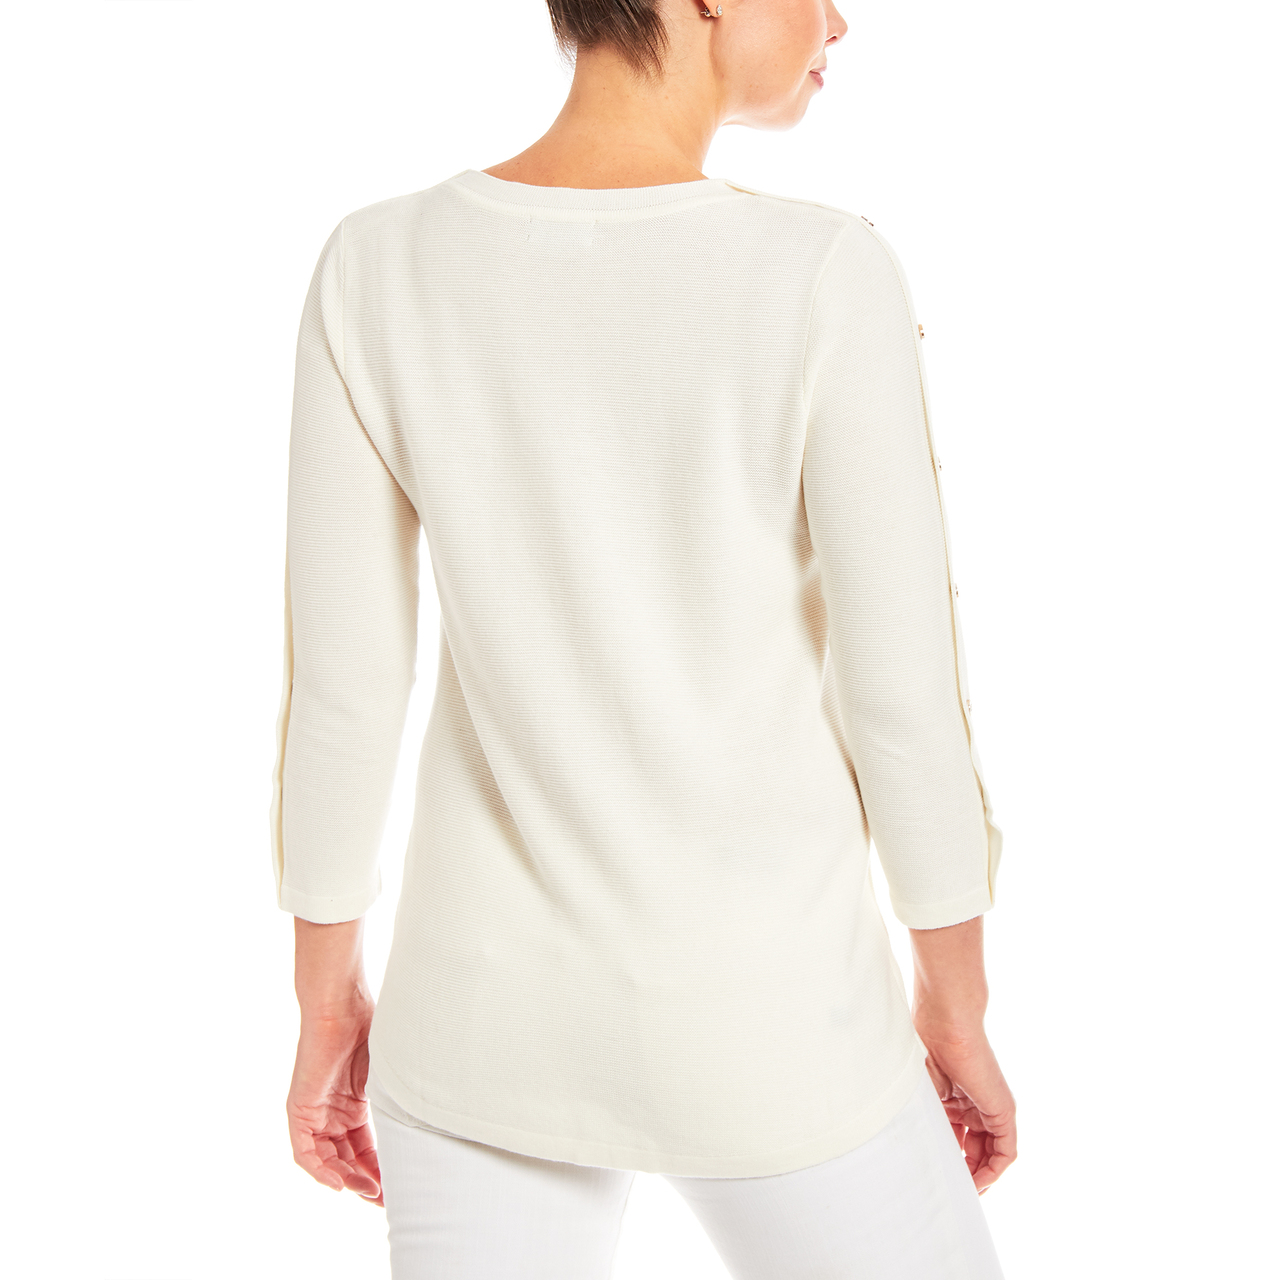 Button Sleeve Crew Neck Sweater in Ivory